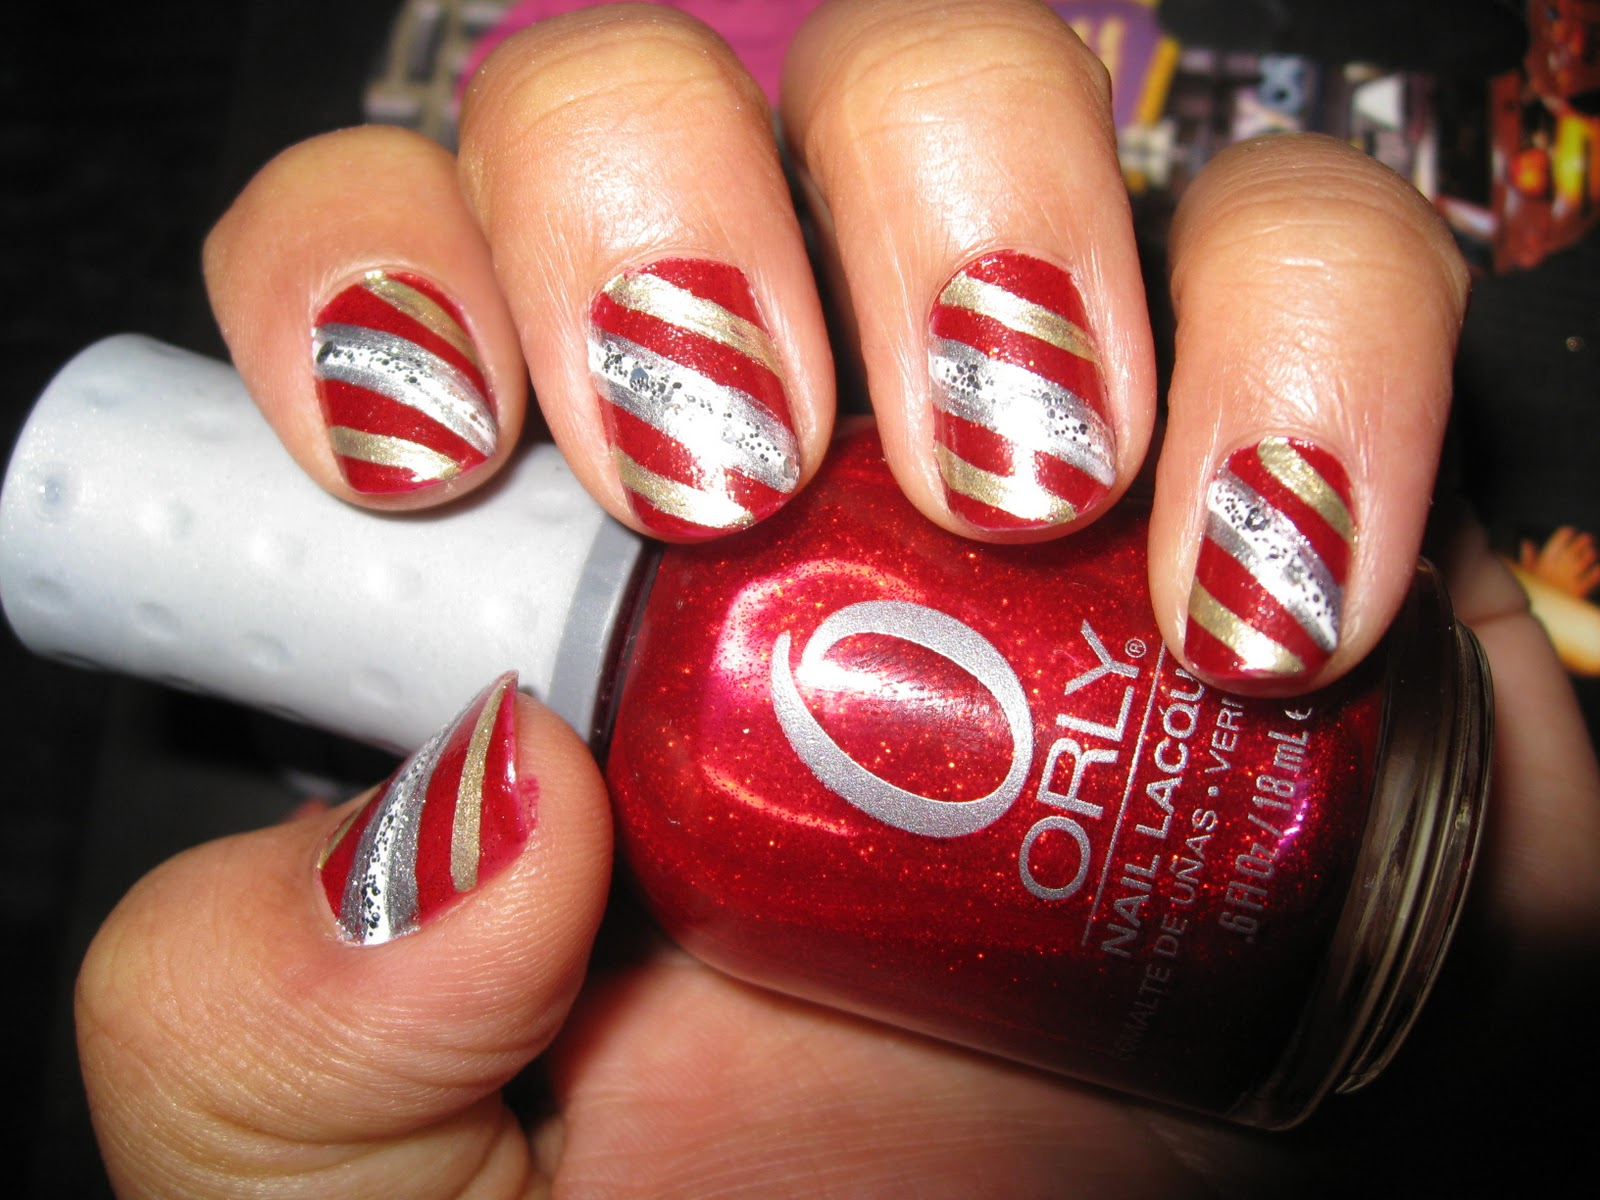 Nail obsession candy cane red white nail designs le belle today i wanted to share some pretty fun candy cane andor red white nail designs for the winter hope you enjoy prinsesfo Images